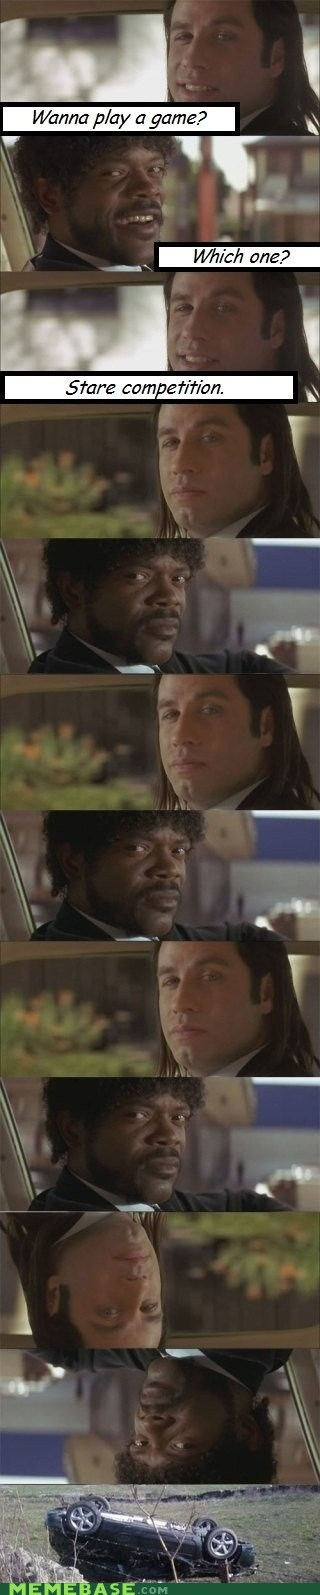 actor car accident celeb john travolta Movie pulp fiction Samuel L Jackson stare contest